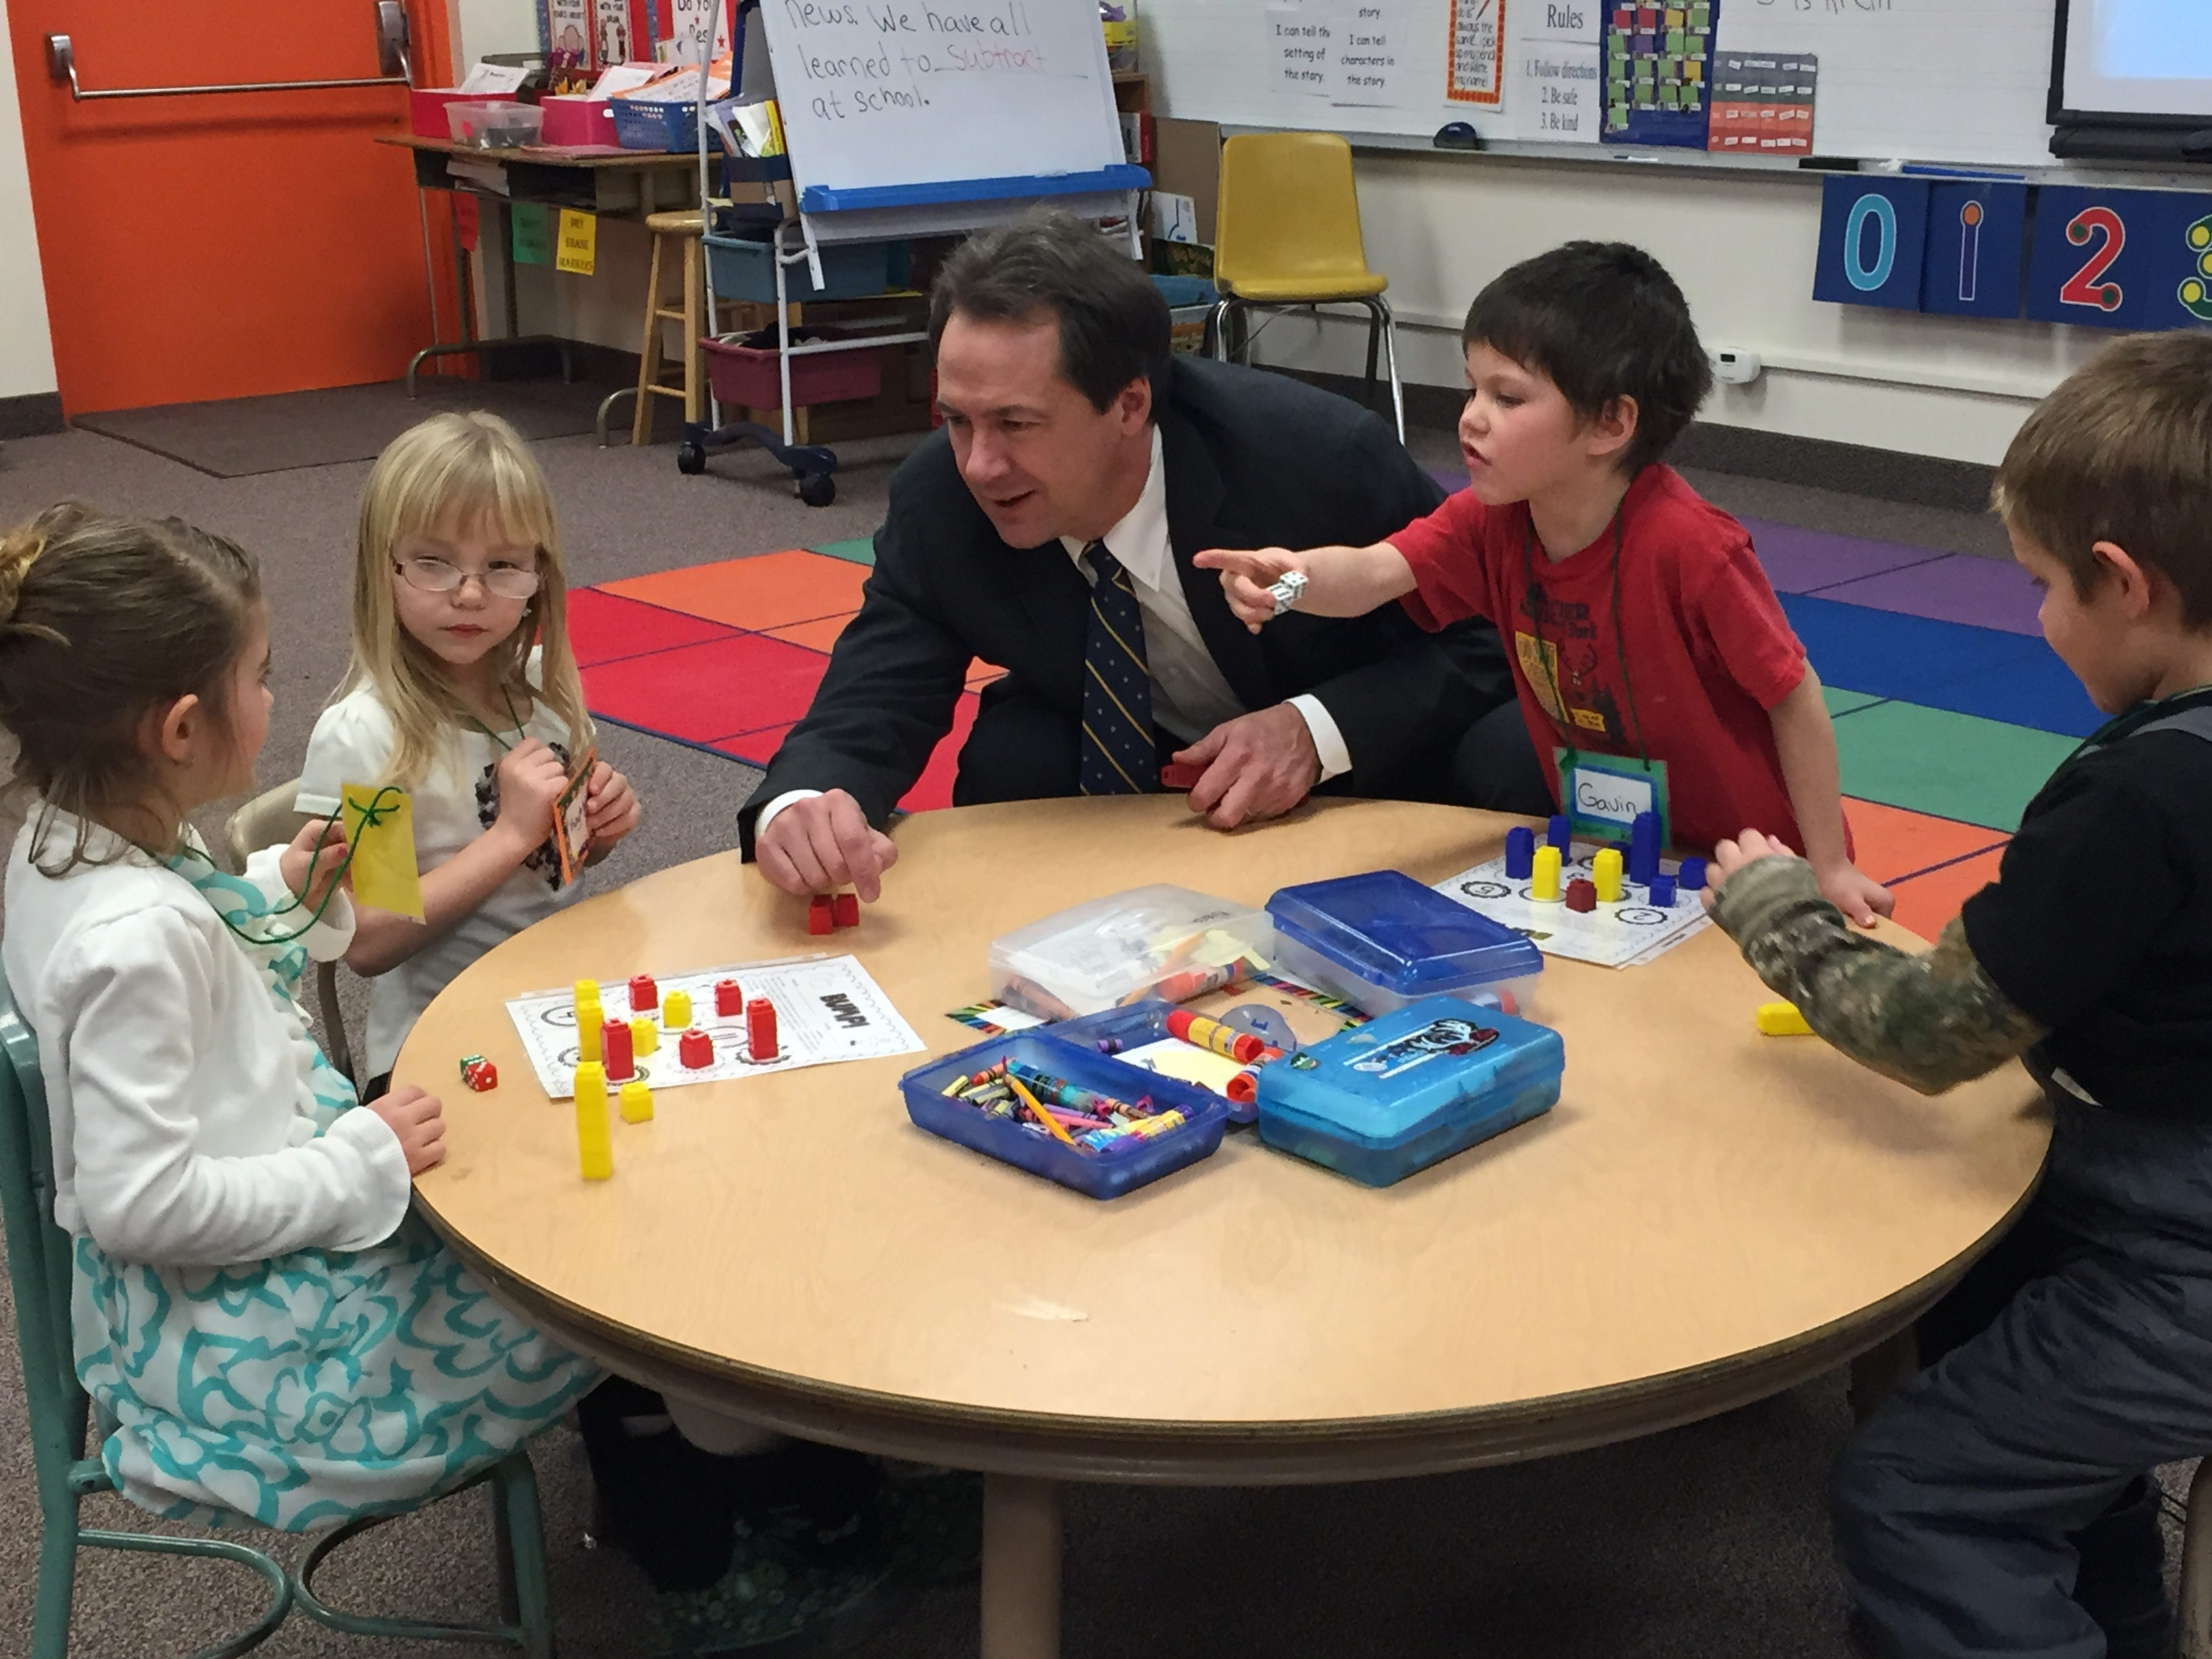 """TRIBUNE File PHOTO/KRISTEN CATES Gov. Steve Bullock plays a math game with kindergartners at West Elementary School in Great Falls in January. Gov. Steve Bullock plays """"Bump"""" - a math game - with kindergartners at West Elementary School in Great Falls on Wednesday. TRIBUNE PHOTO/KRISTEN CATES."""